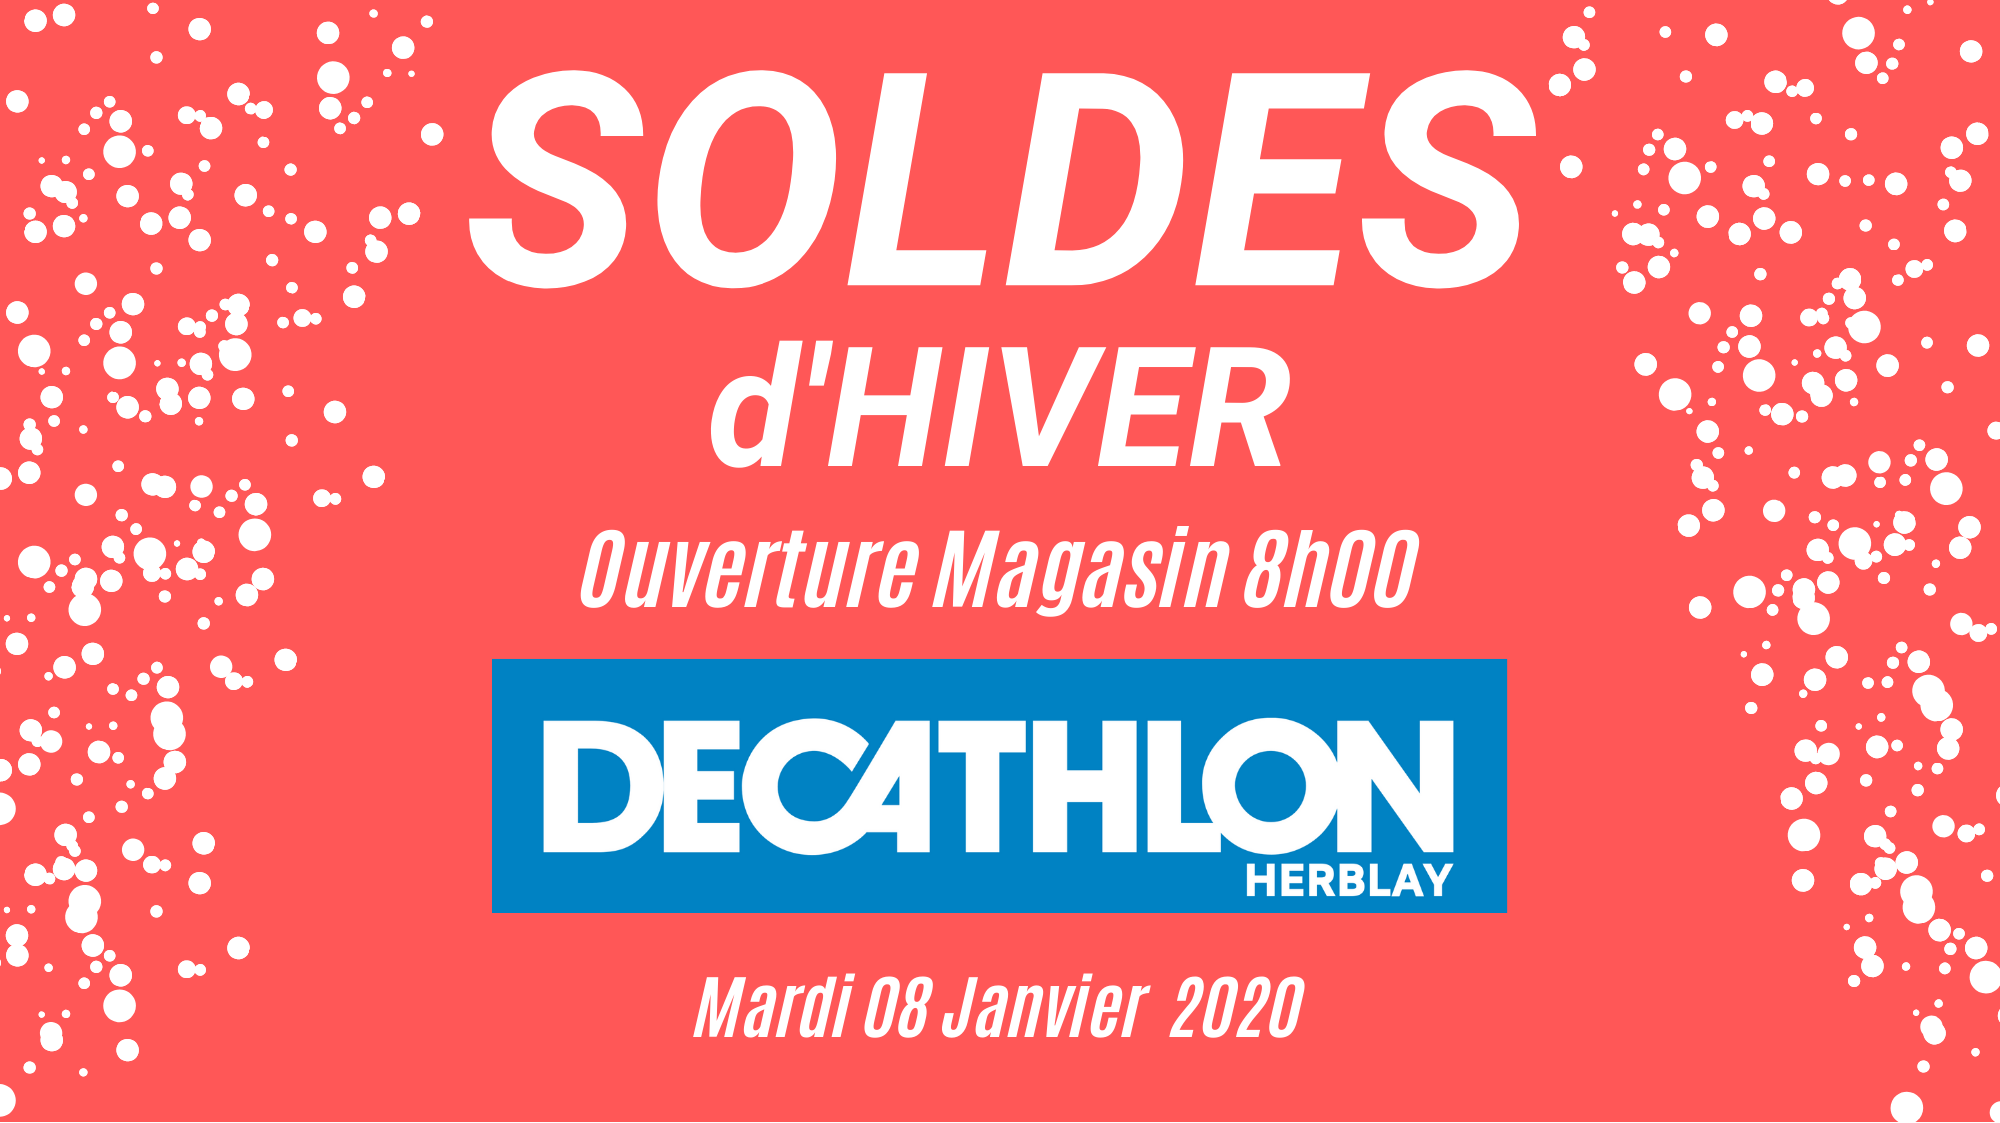 Decathlon Herblay